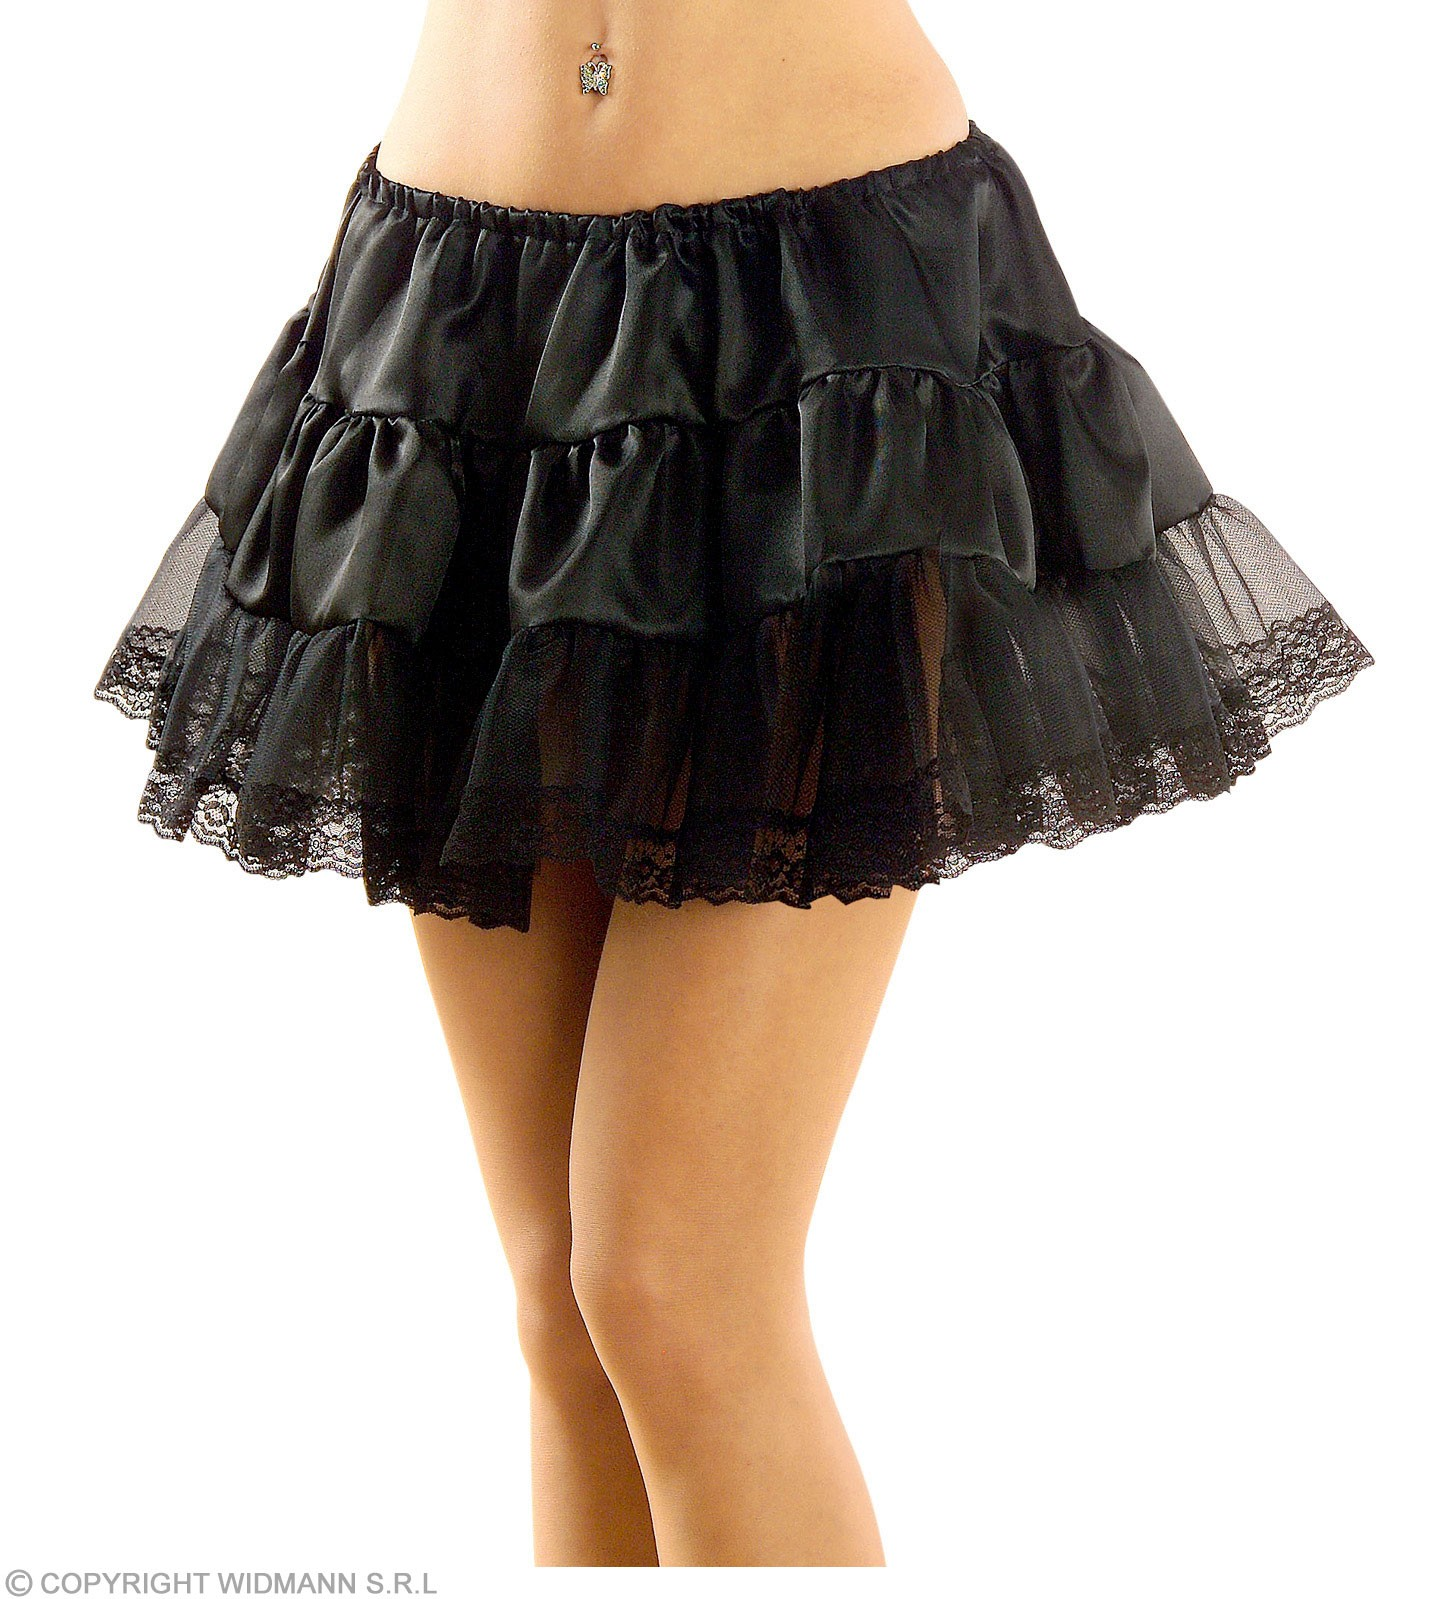 Petticoat Satin / Lace Black Fancy Dress Costume